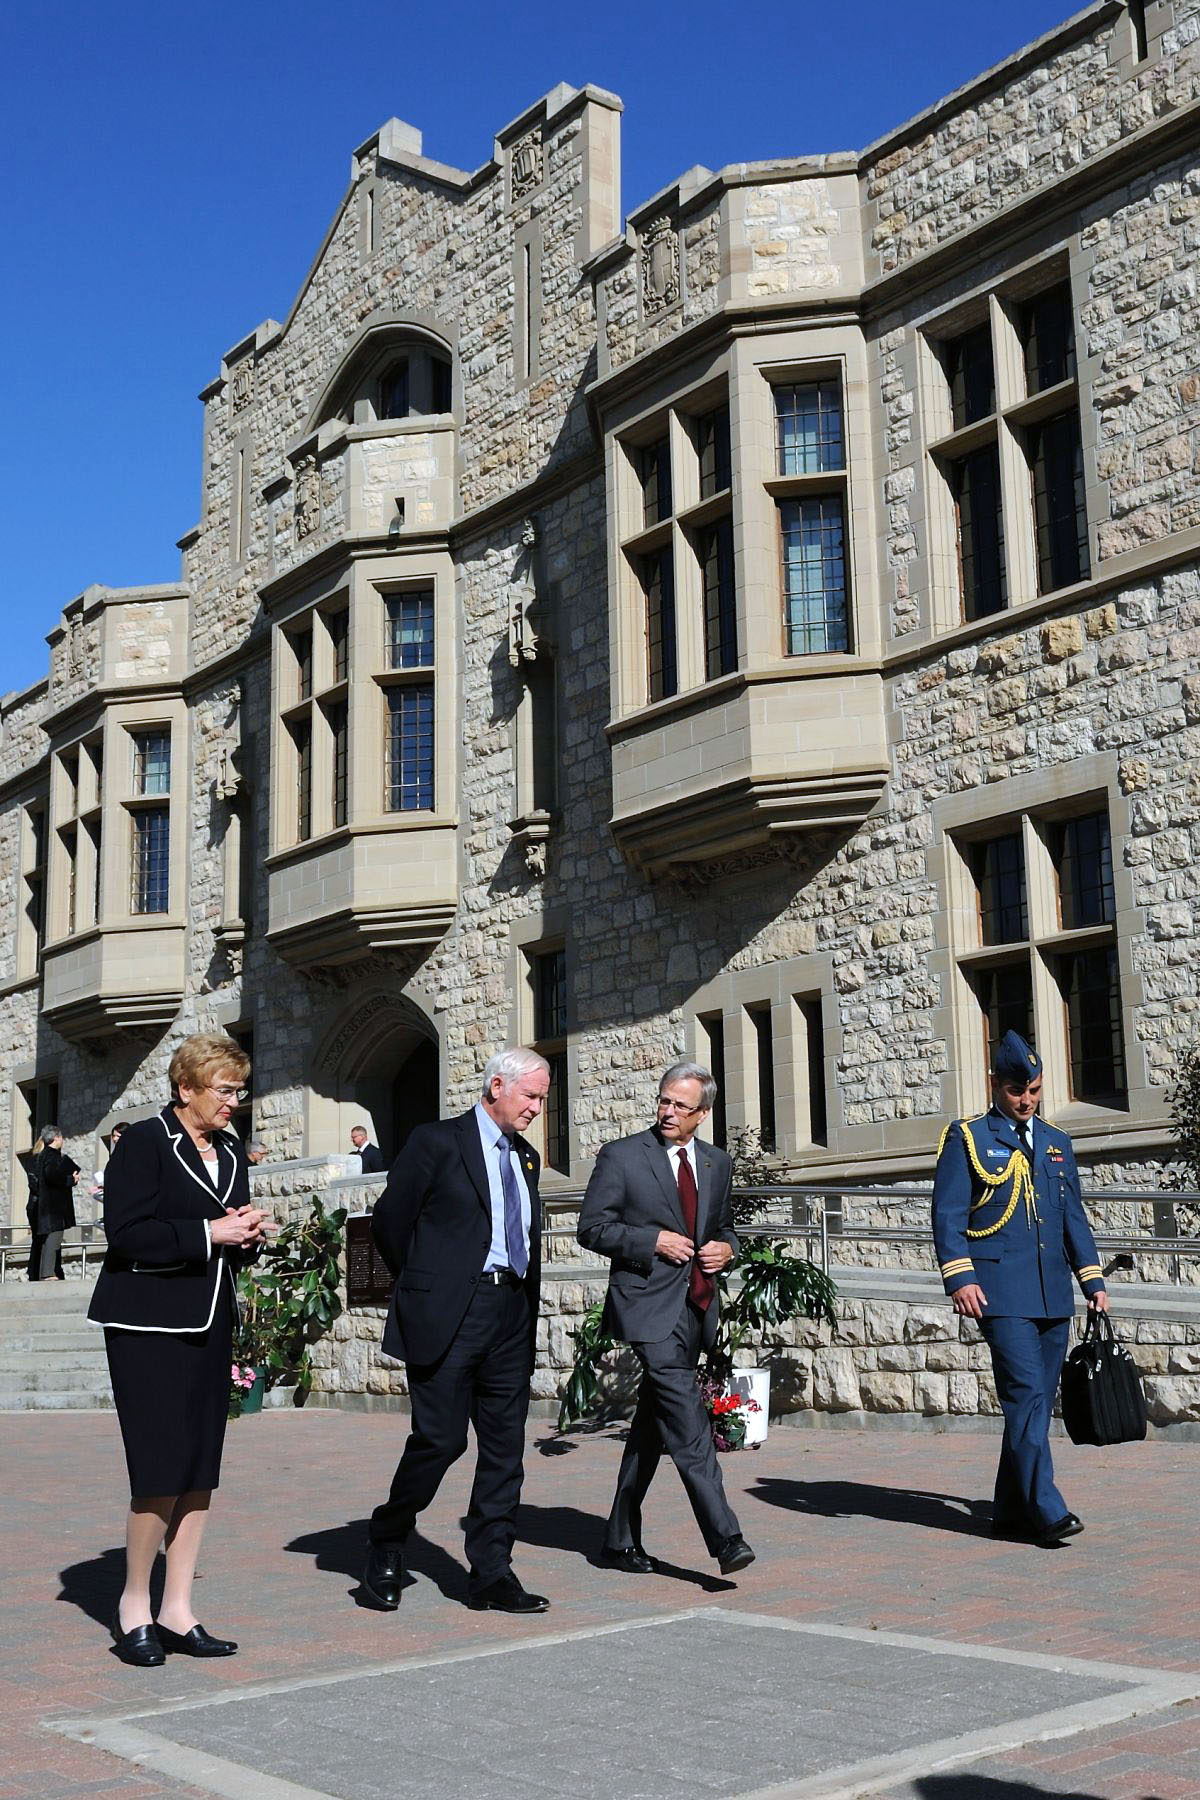 Before leaving the province, His Excellency made a final stop to the University of Saskatchewan. Upon his arrival, the Governor General was greeted by University President Mr. Peter Mackinnon.